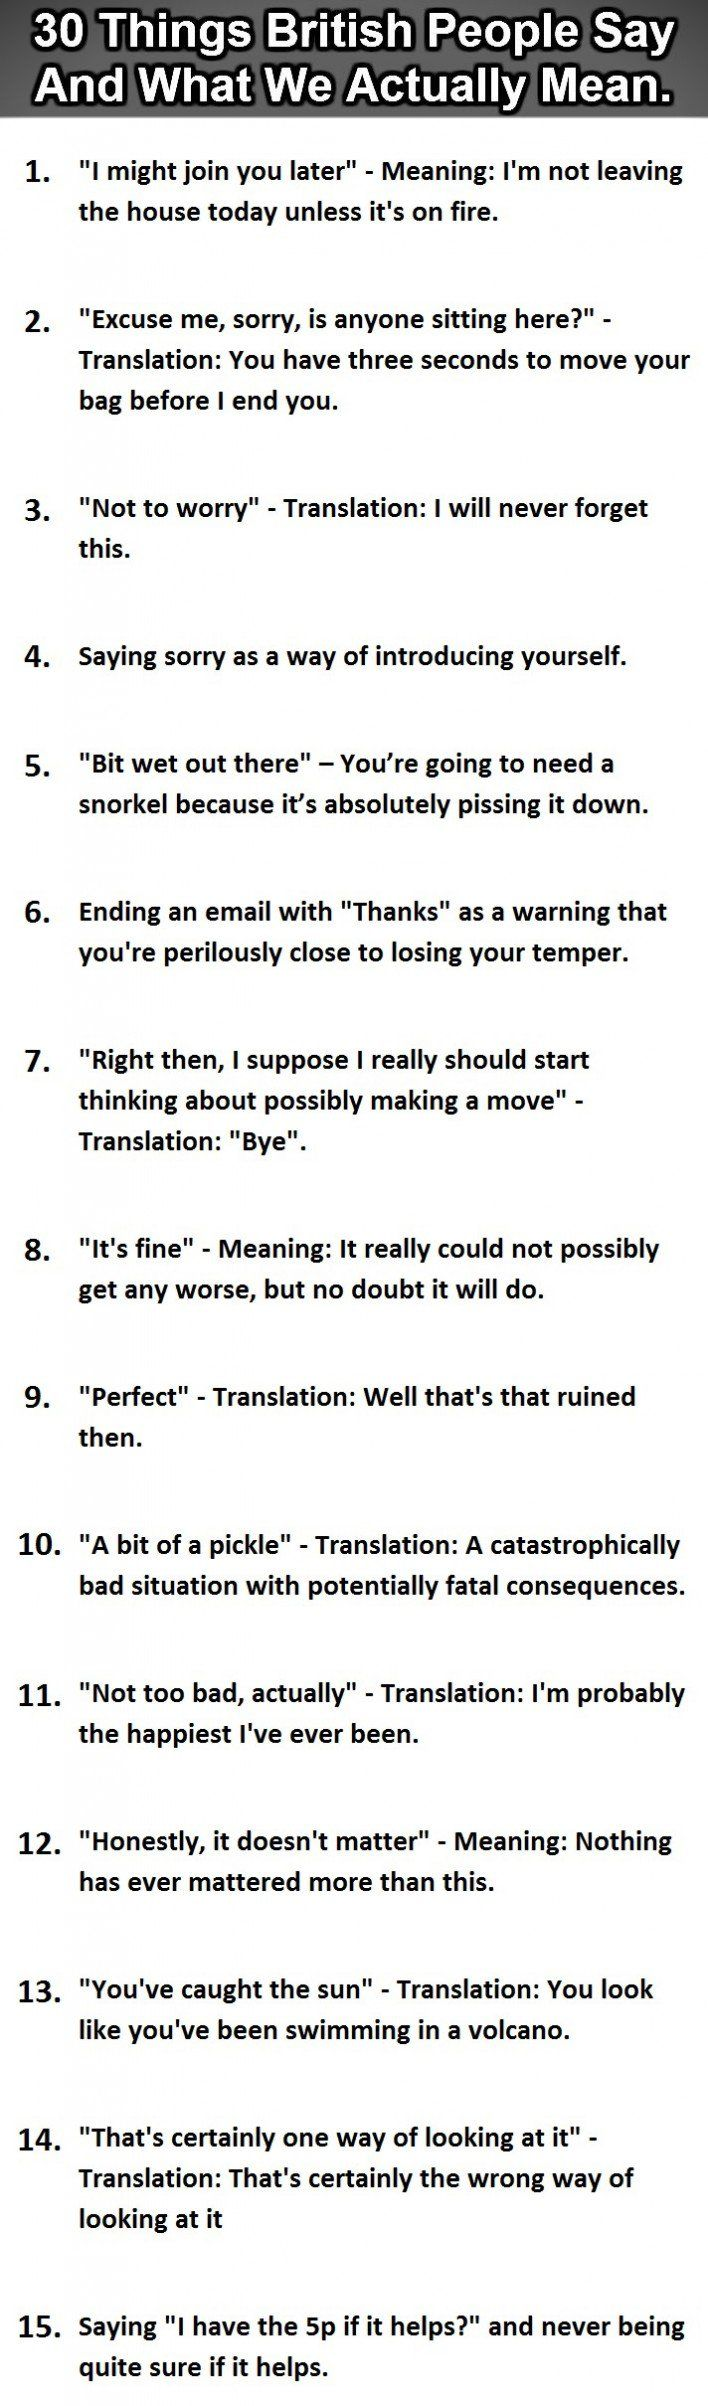 30 Things British People Say Vs What We Actually Mean 9 Is Perfect British Humor British People British Things